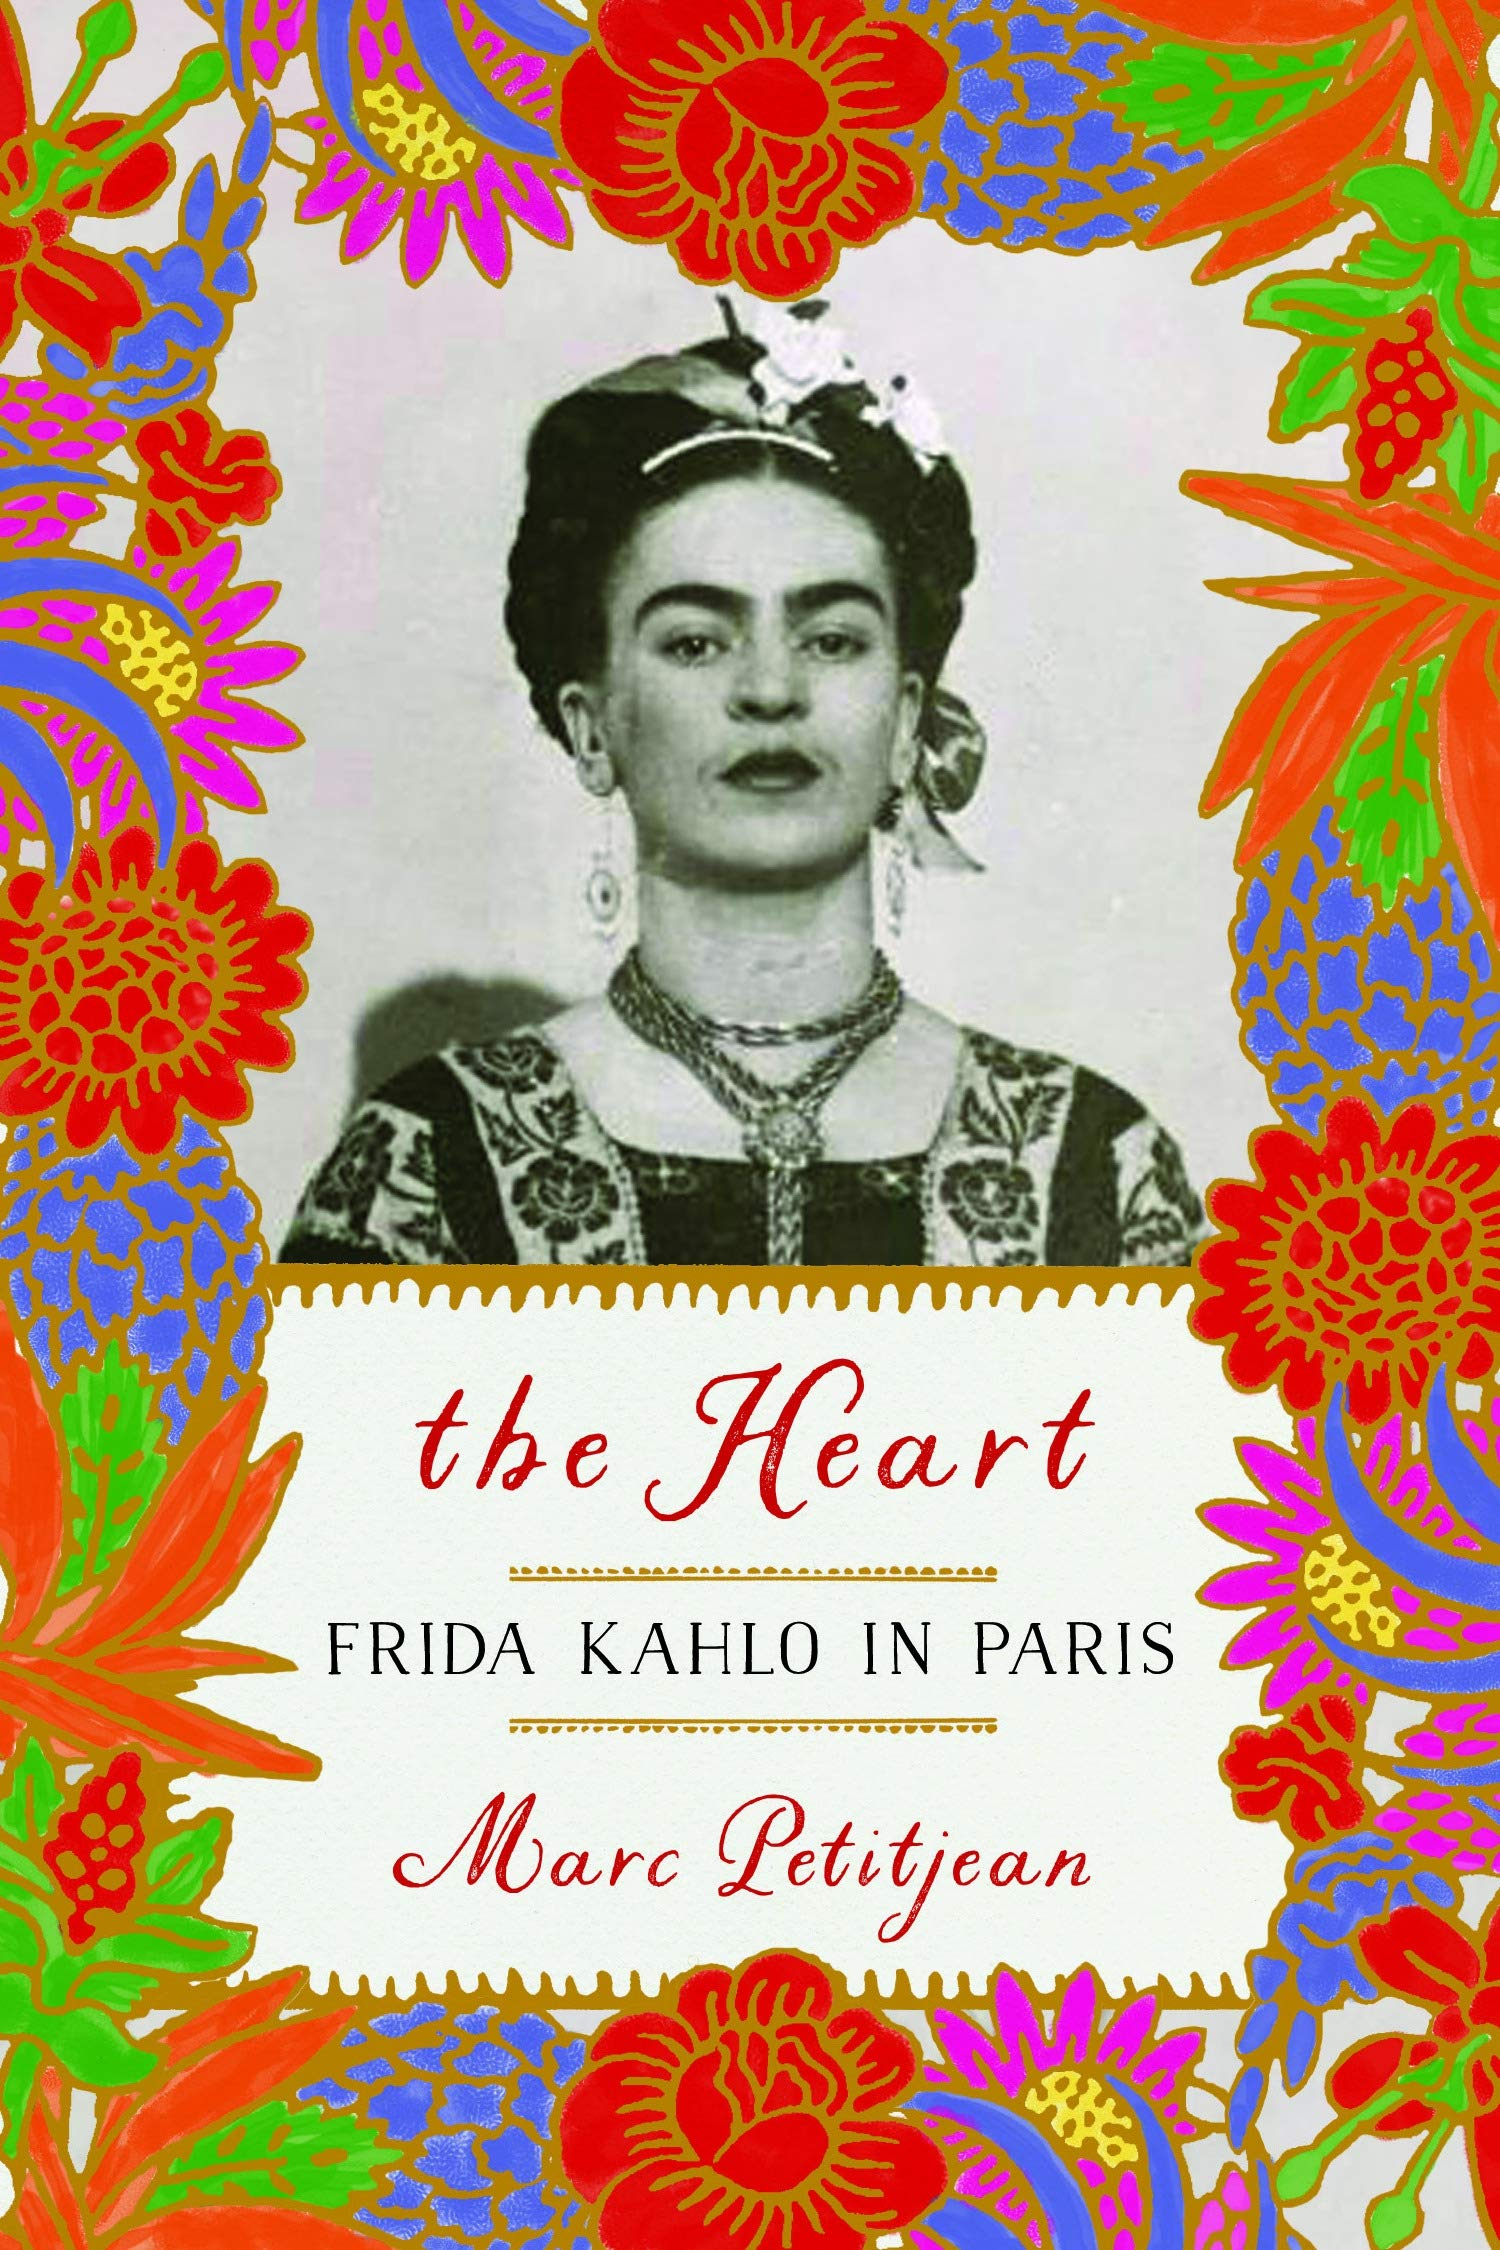 The Heart: Frida Kahlo in Paris by Marc Petitjean,Other, $25,